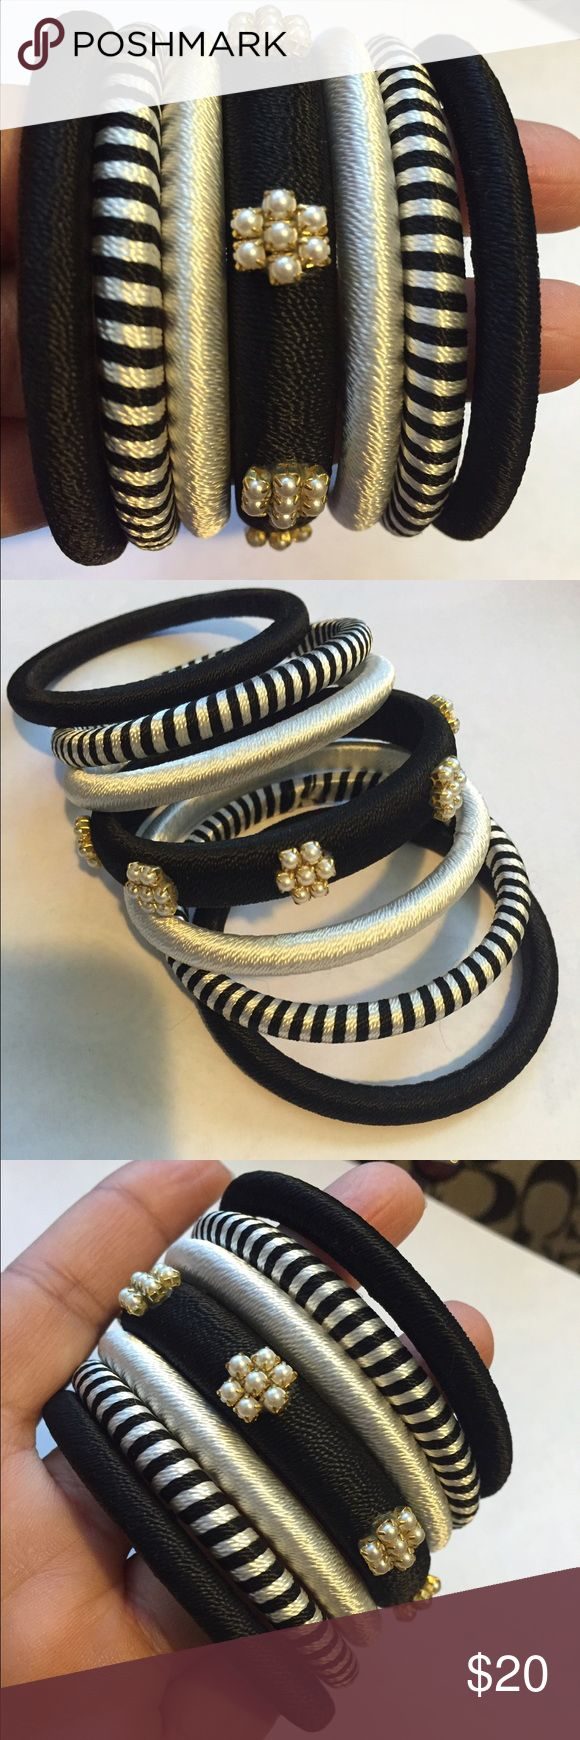 Silk Thread Bangles Beautiful handmade in India silk thread bangles. Individually wrapped with silk thread. You will receive 7 bangles. Gorgeous!! Jewelry Bracelets